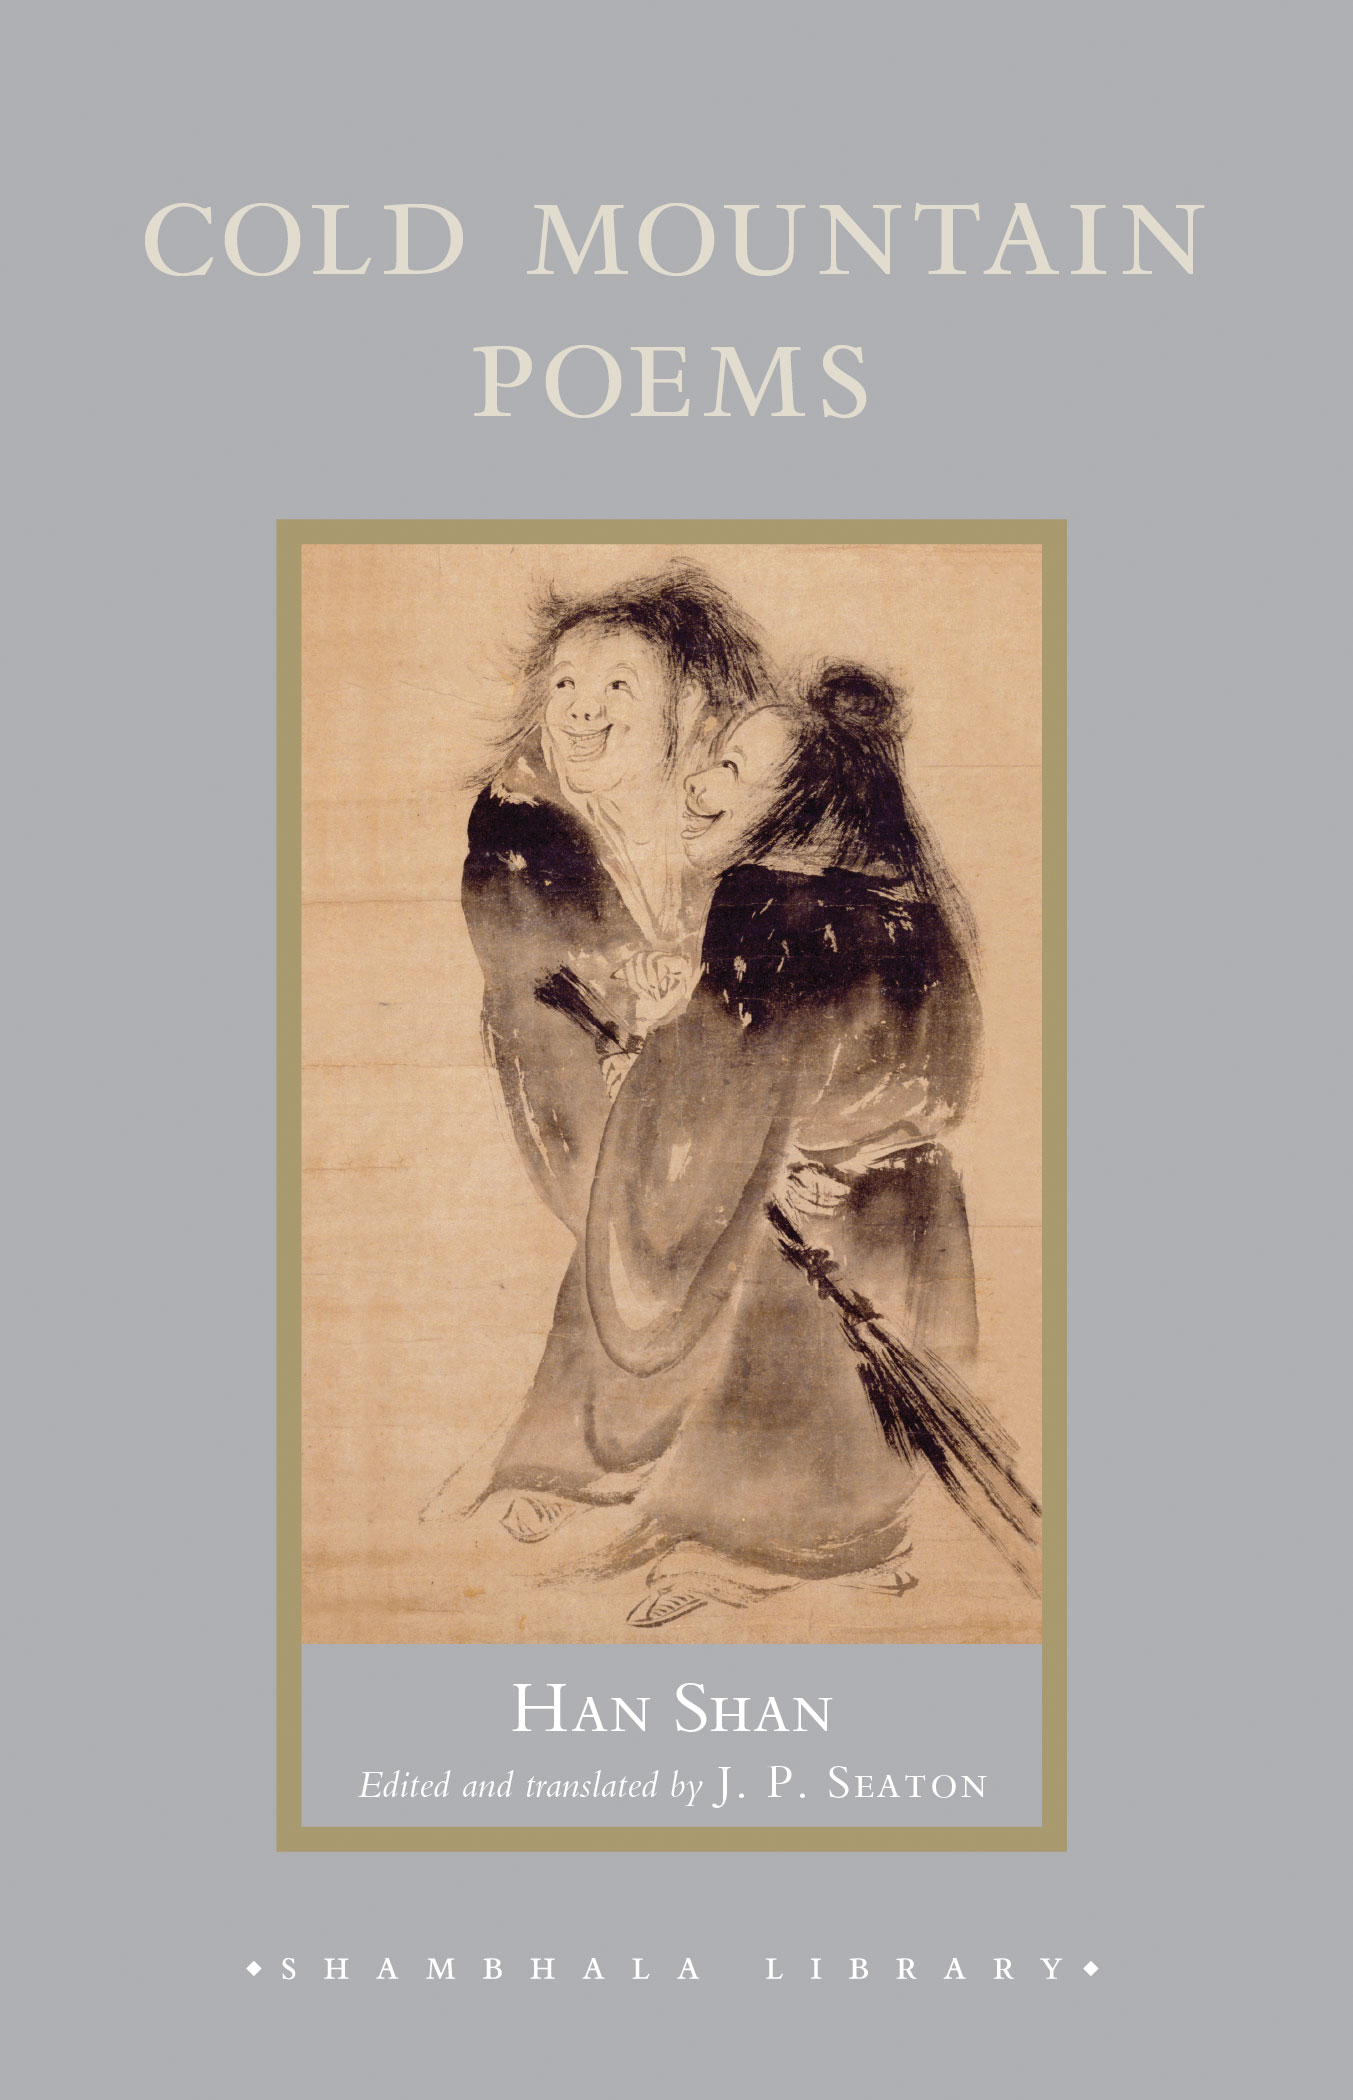 Cold Mountain Poems: Zen Poems of Han Shan, Shih Te, and Wang Fan-chih